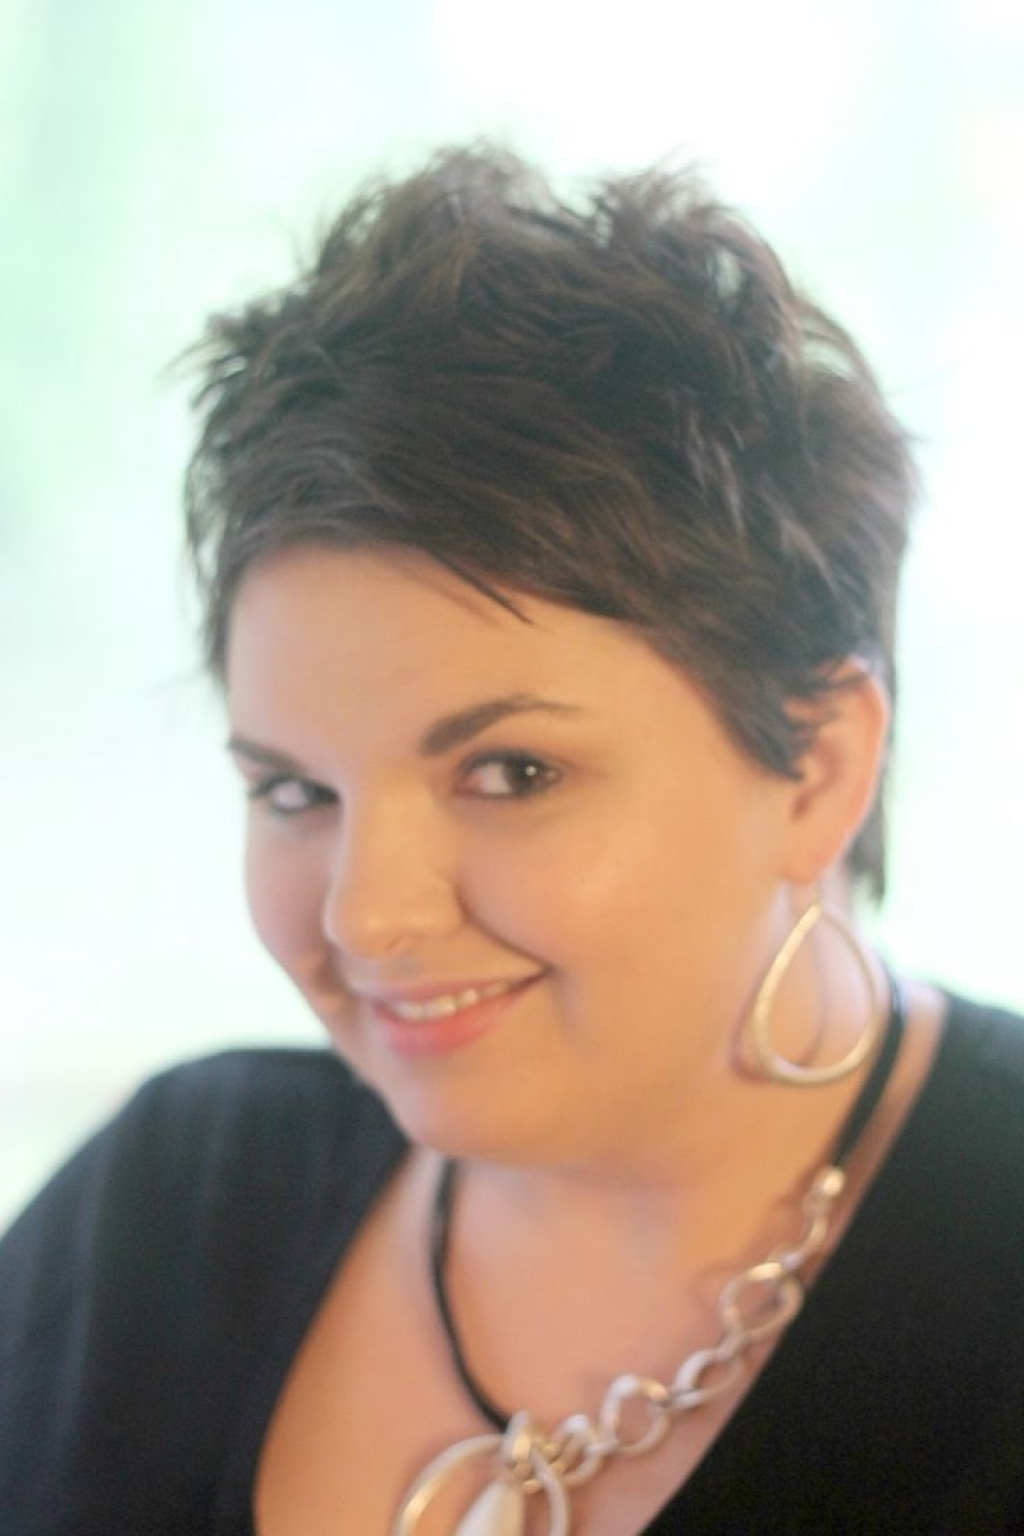 Short Hairstyles On Fat Women – Hairdoes Inside Short Hairstyles For Curvy Women (View 20 of 25)